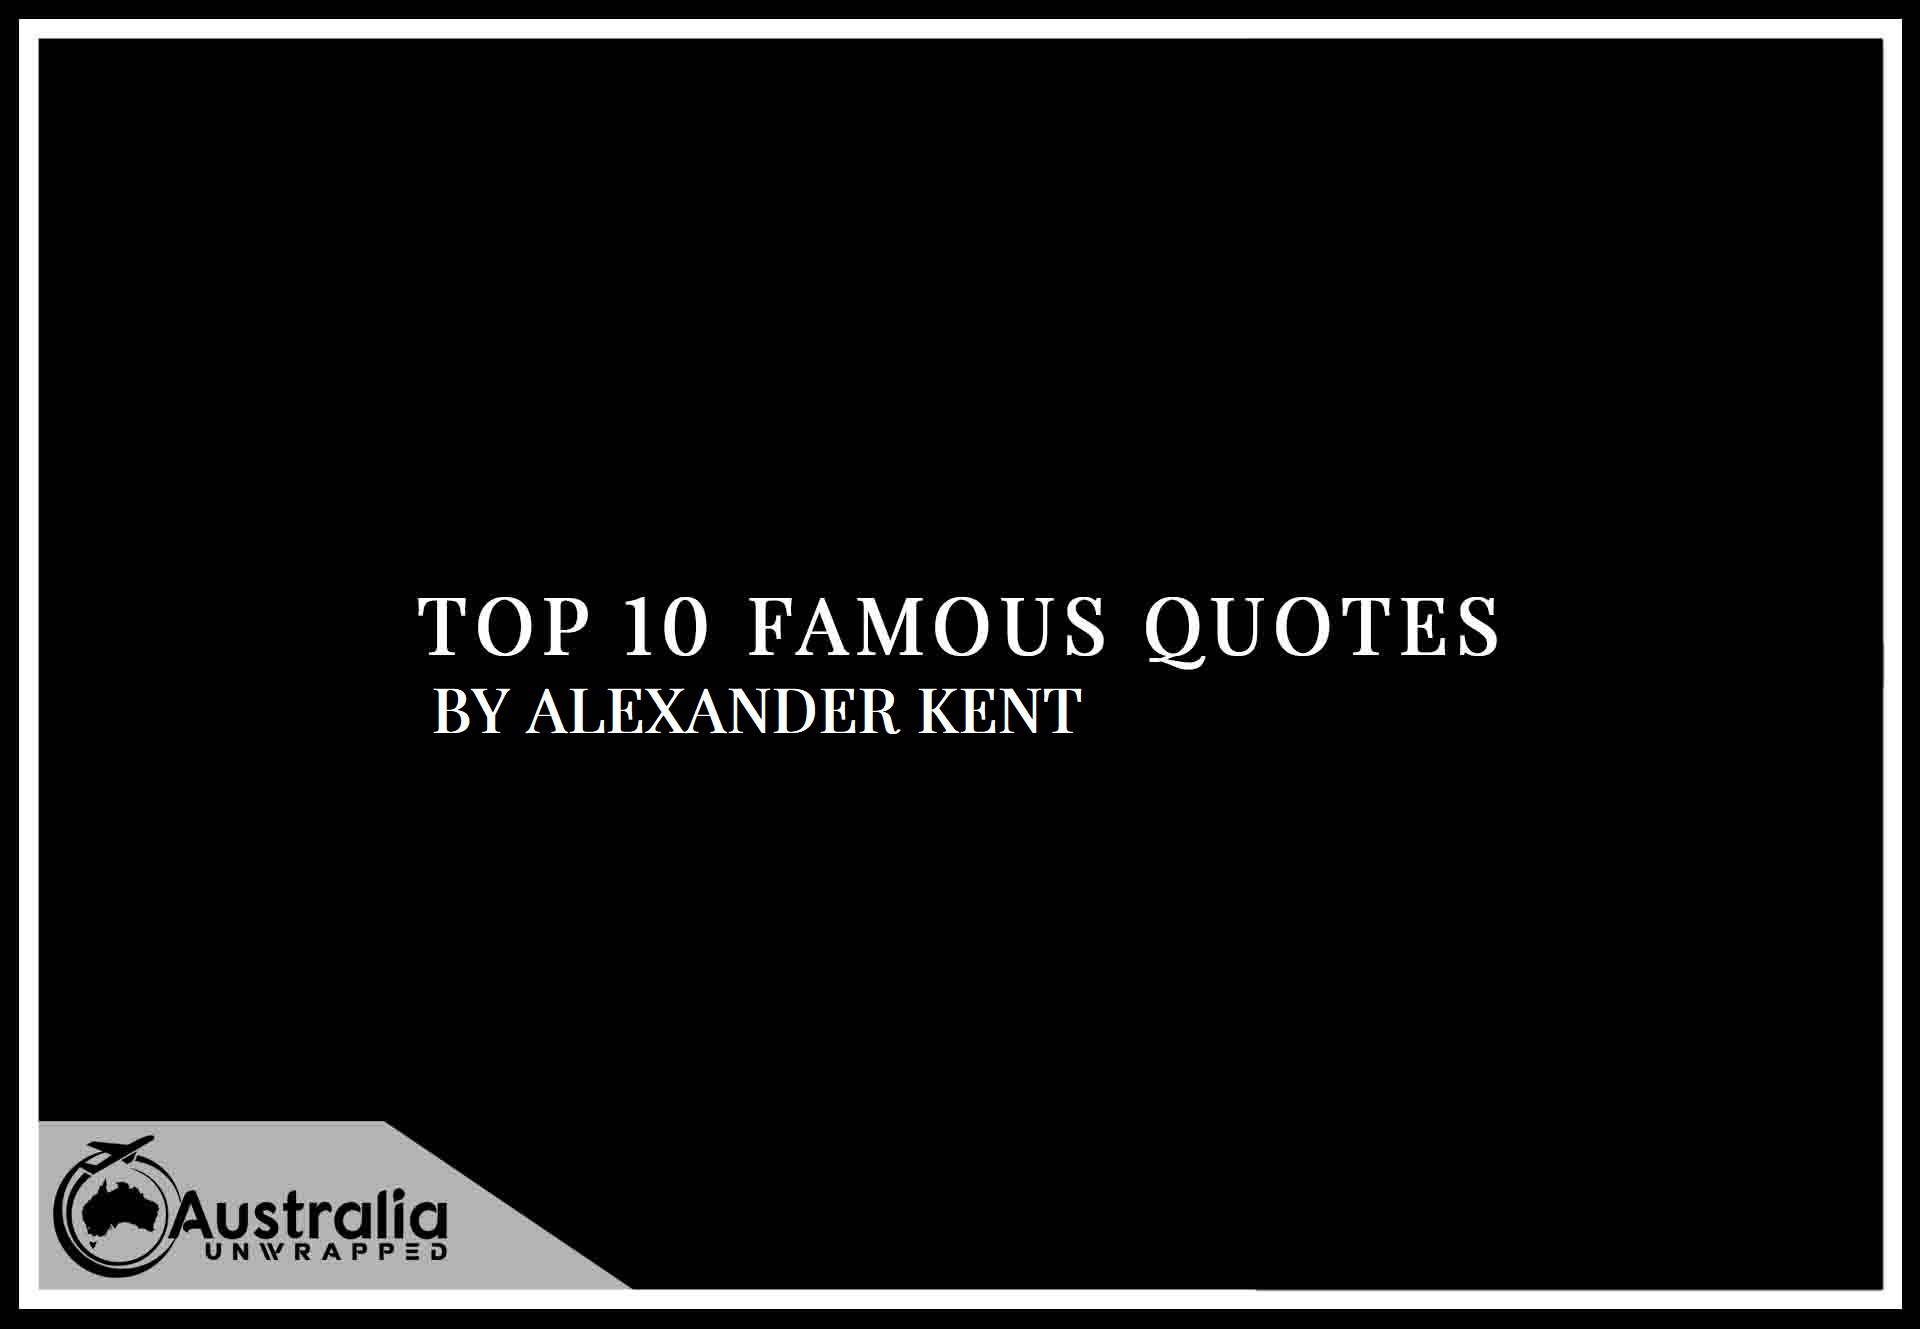 Top 10 Famous Quotes by Author Alexander Kent